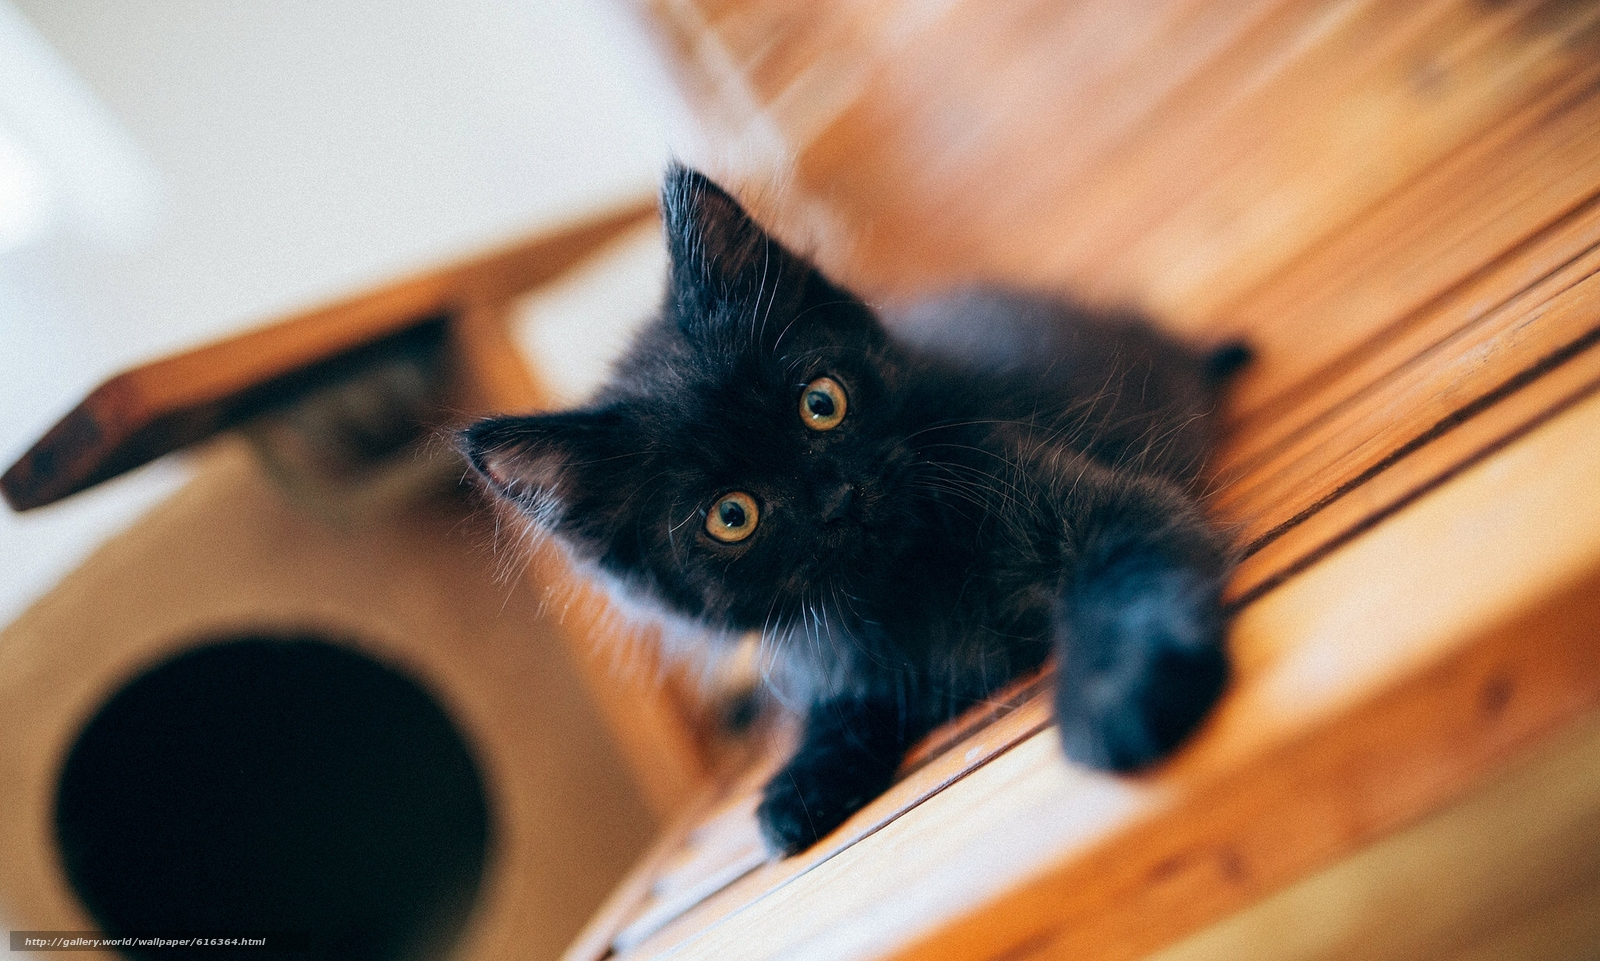 Download Wallpaper Black Kitten Kitten Black Baby Free Desktop Wallpaper In The Resolution 2048x1230 Picture 616364